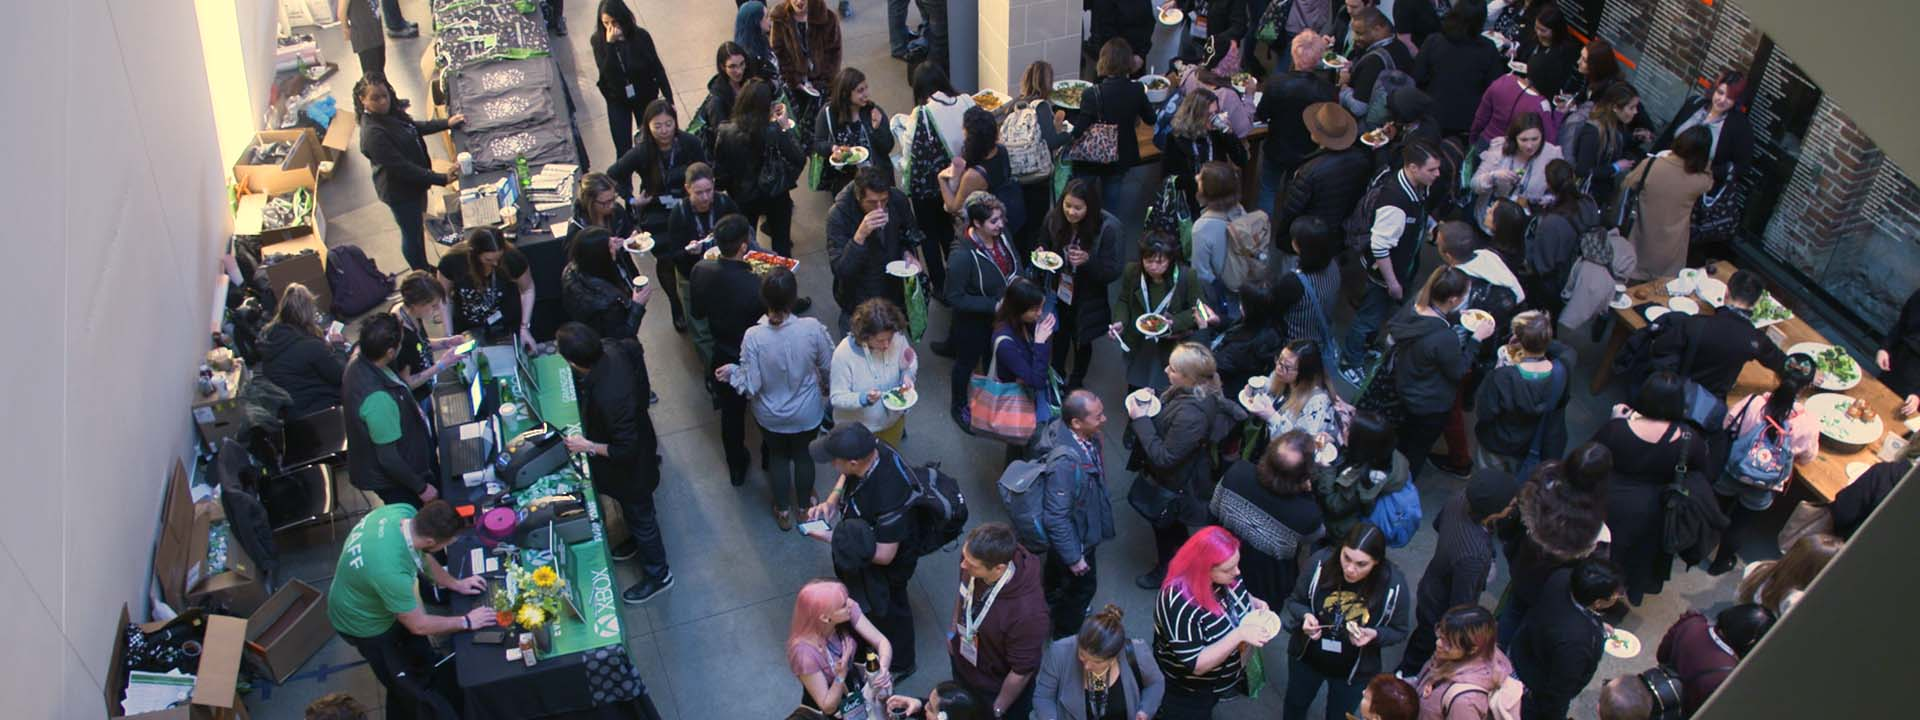 women from the gaming industry mingling during a reception